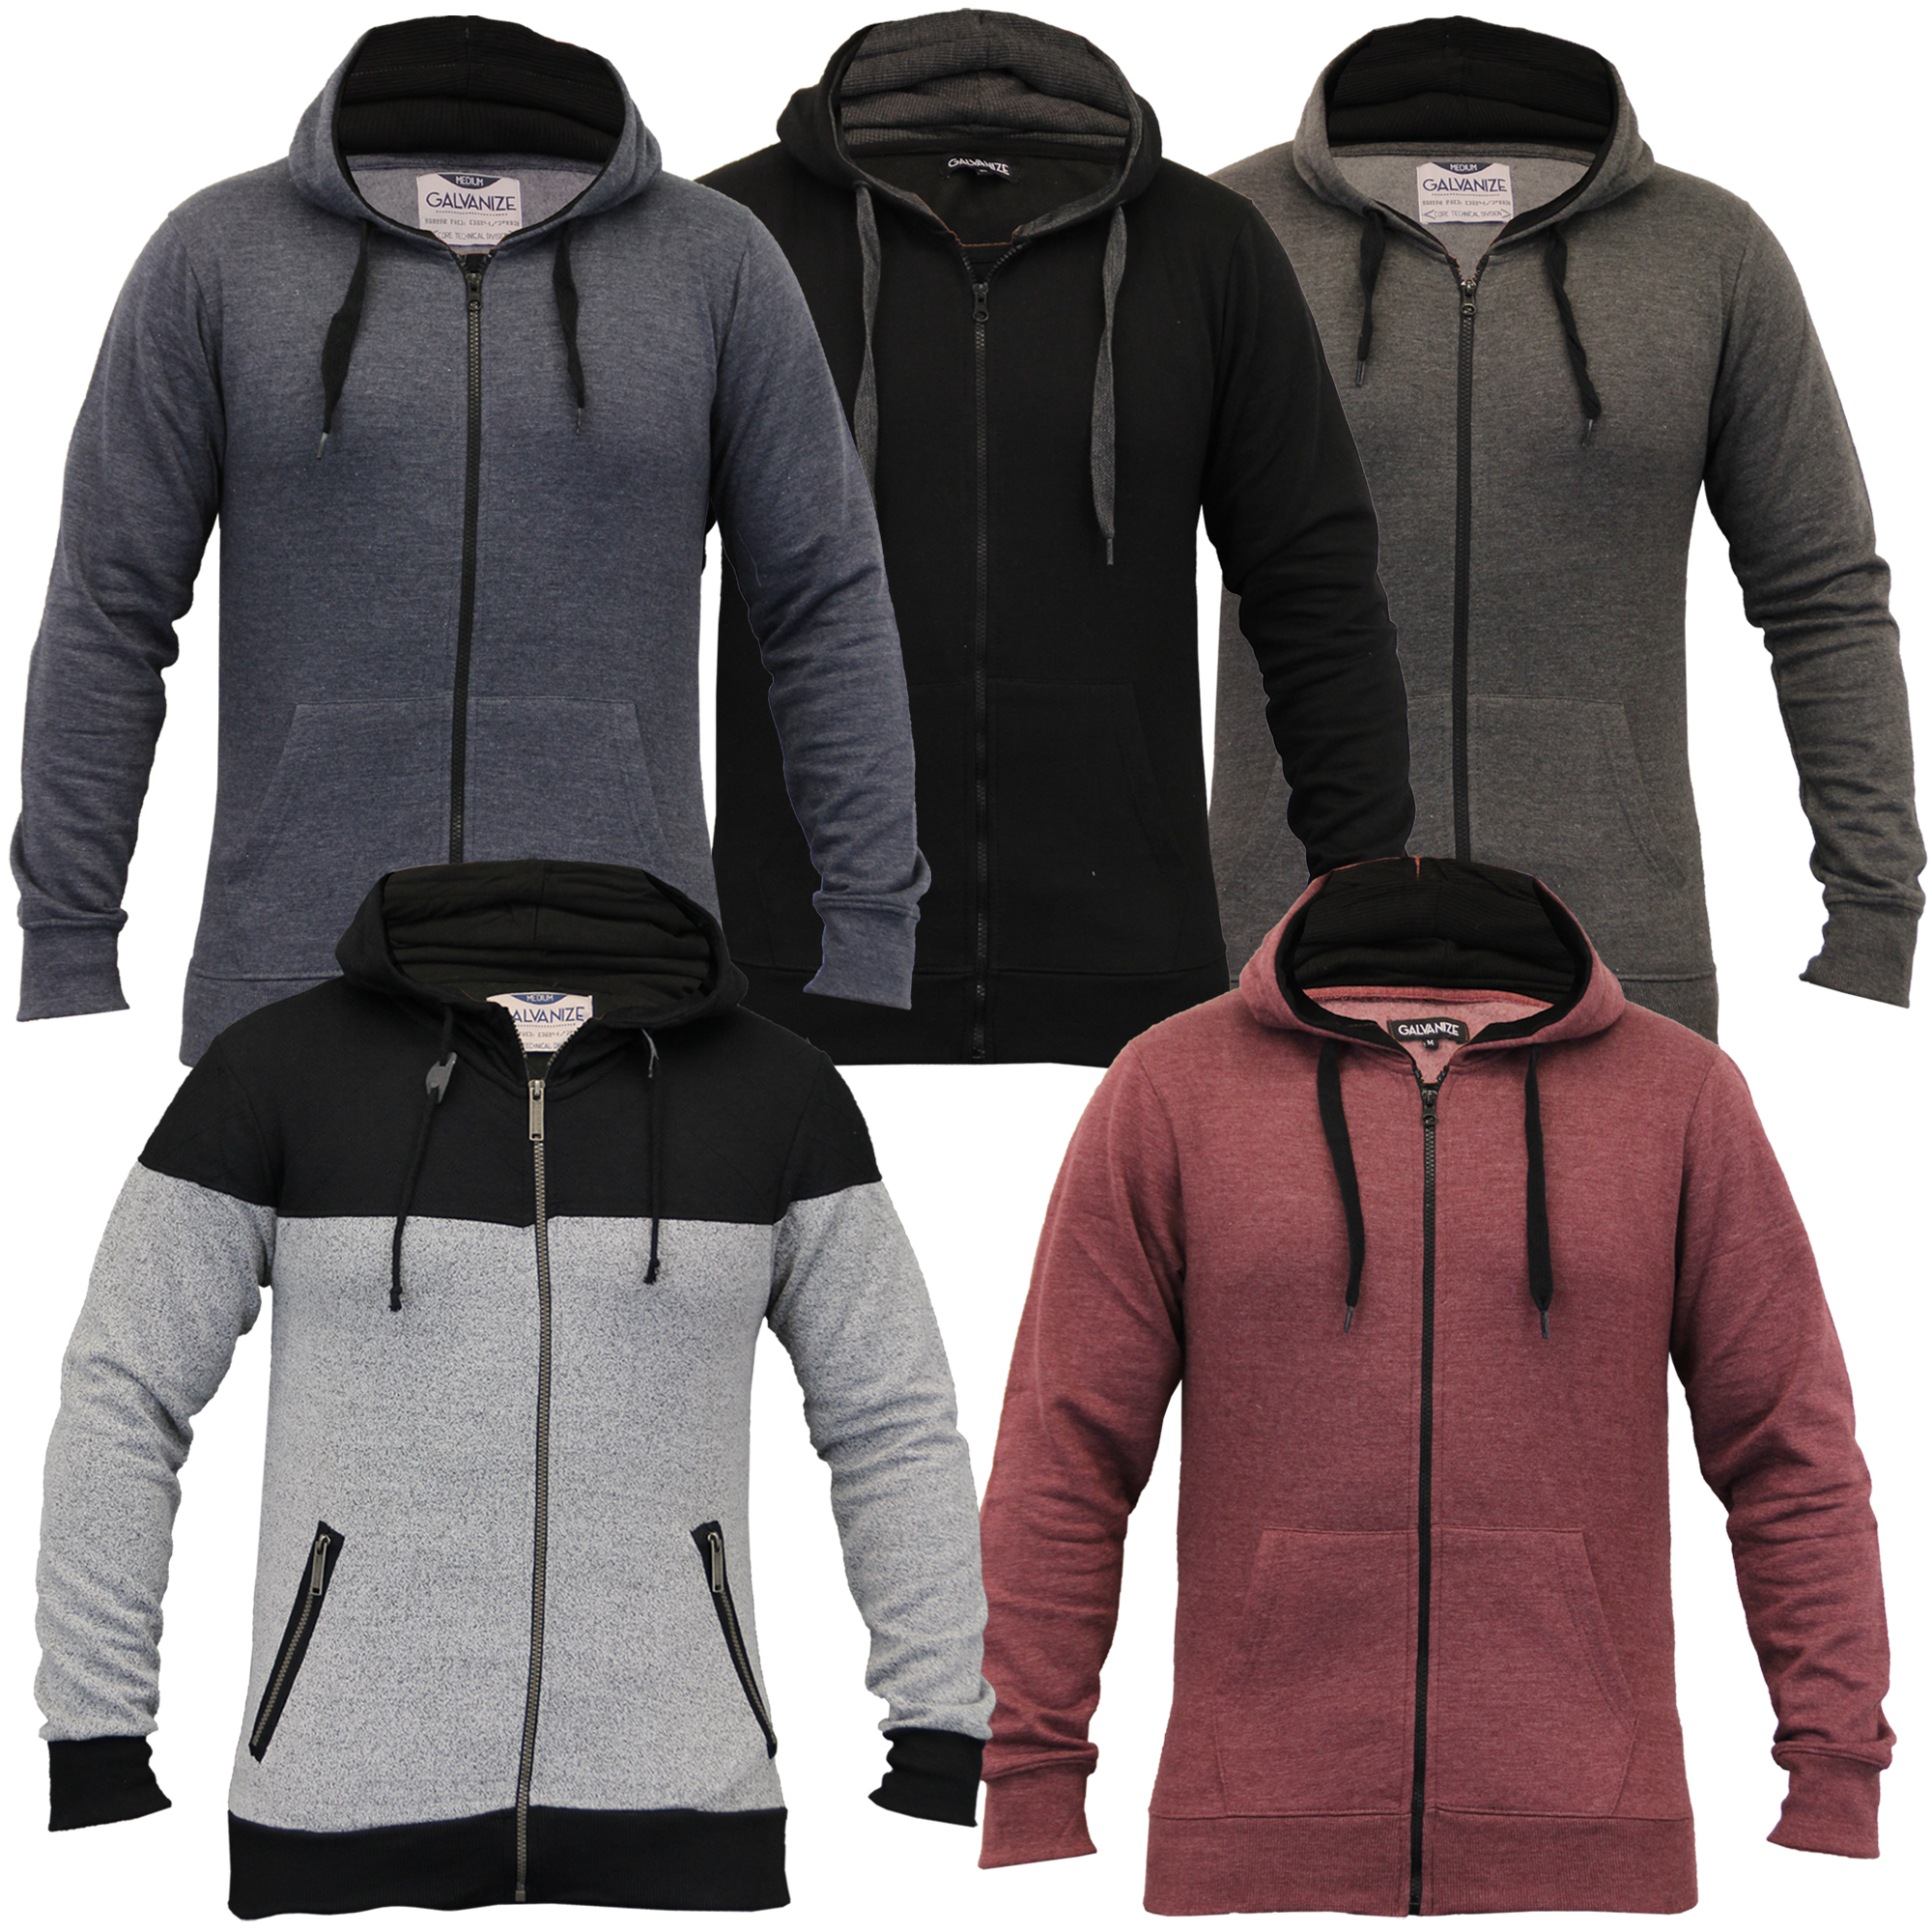 Mens-Diamond-Quilted-Hooded-Top-Fleece-Lined-Sweatshirt-By-Galvanize thumbnail 5